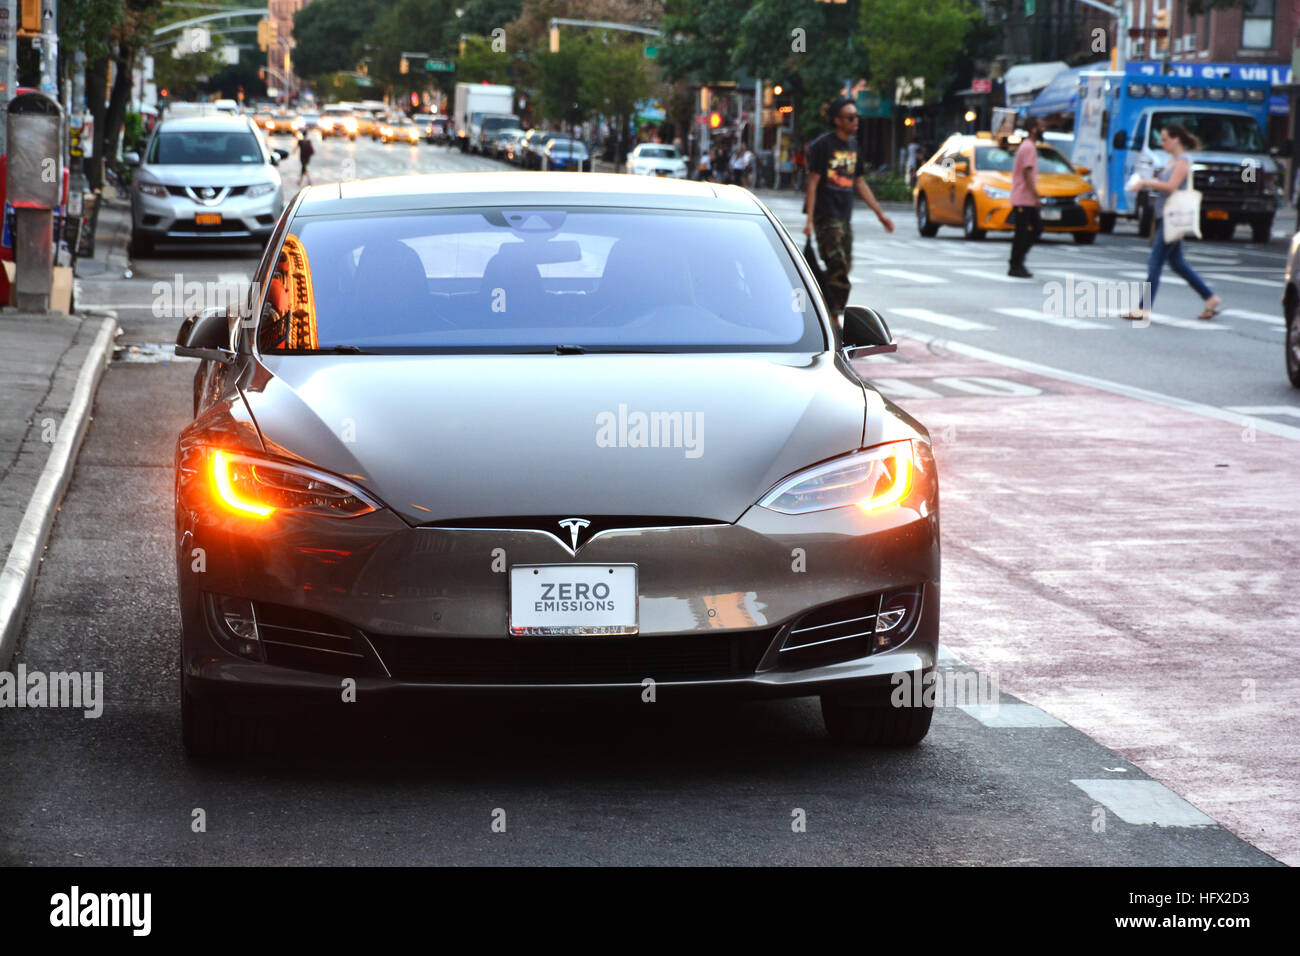 Zero Pollution Motors >> Tesla electric car with ZERO EMISSIONS text on the license plate Stock Photo: 130265103 - Alamy